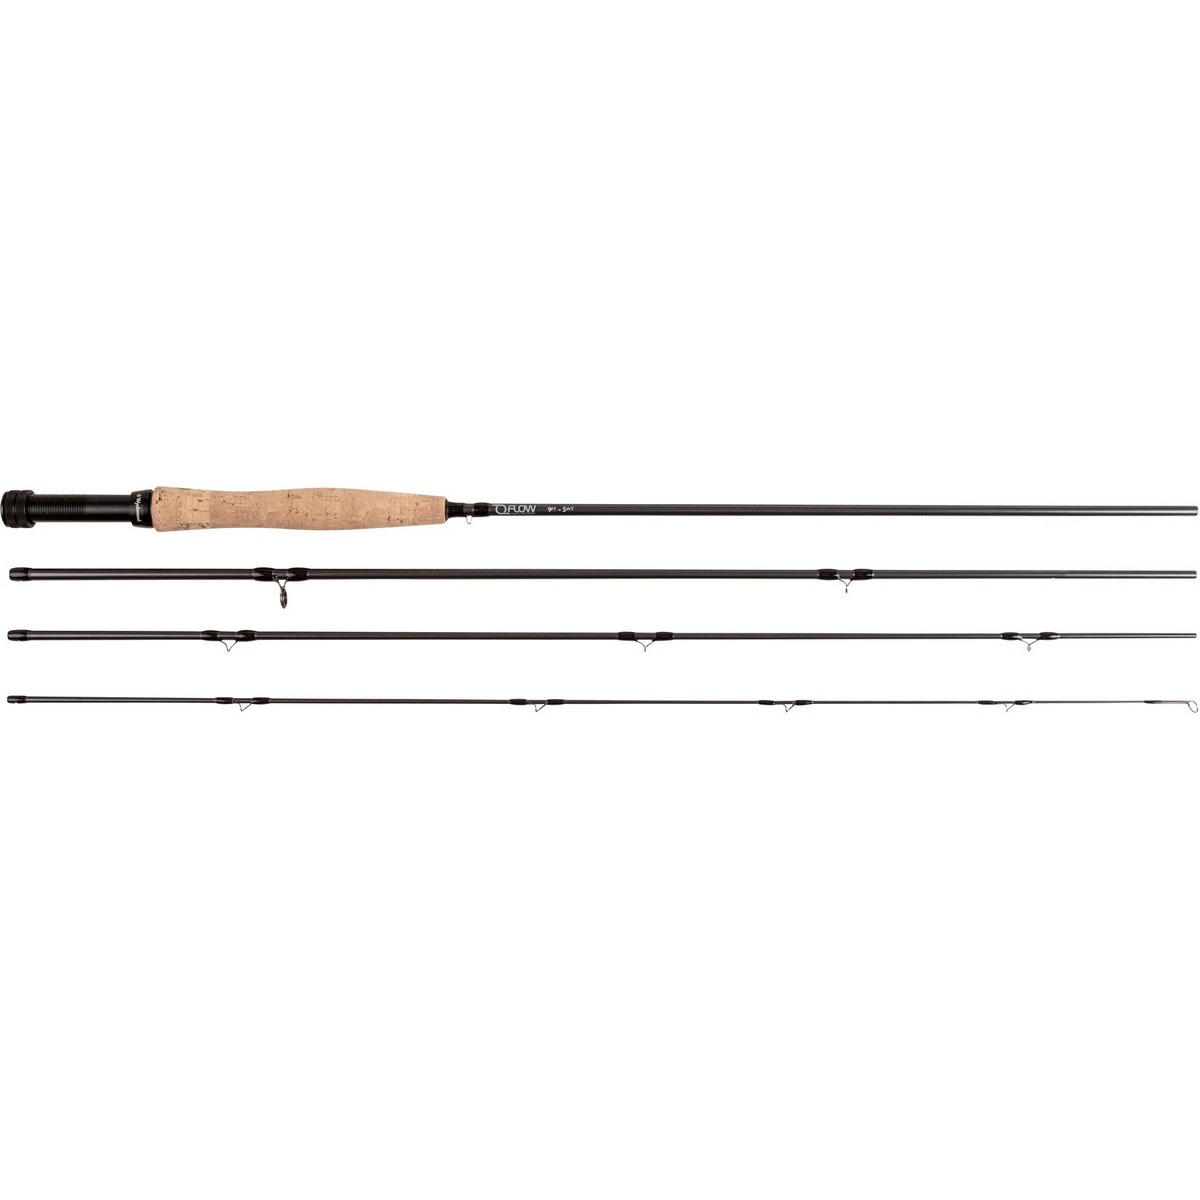 Wychwood Muškařský prut Flow Fly Rod 10ft, #8